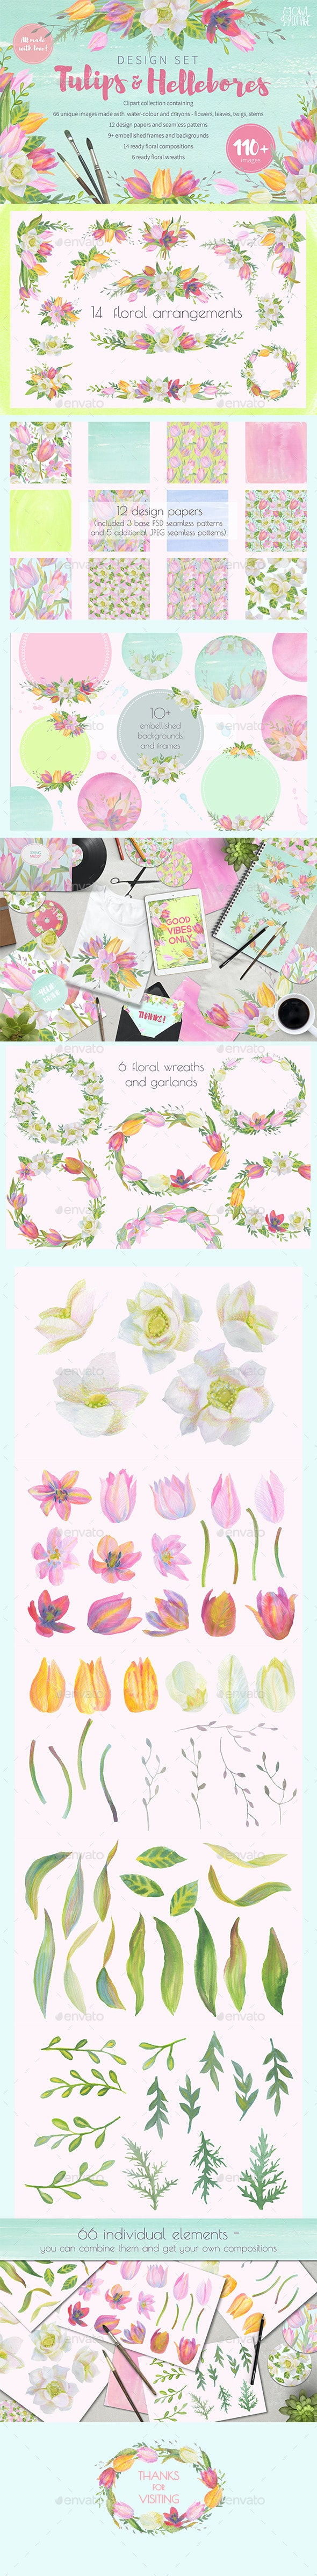 Floral Design Pack Watercolor Pastel By Annareichel Graphicriver